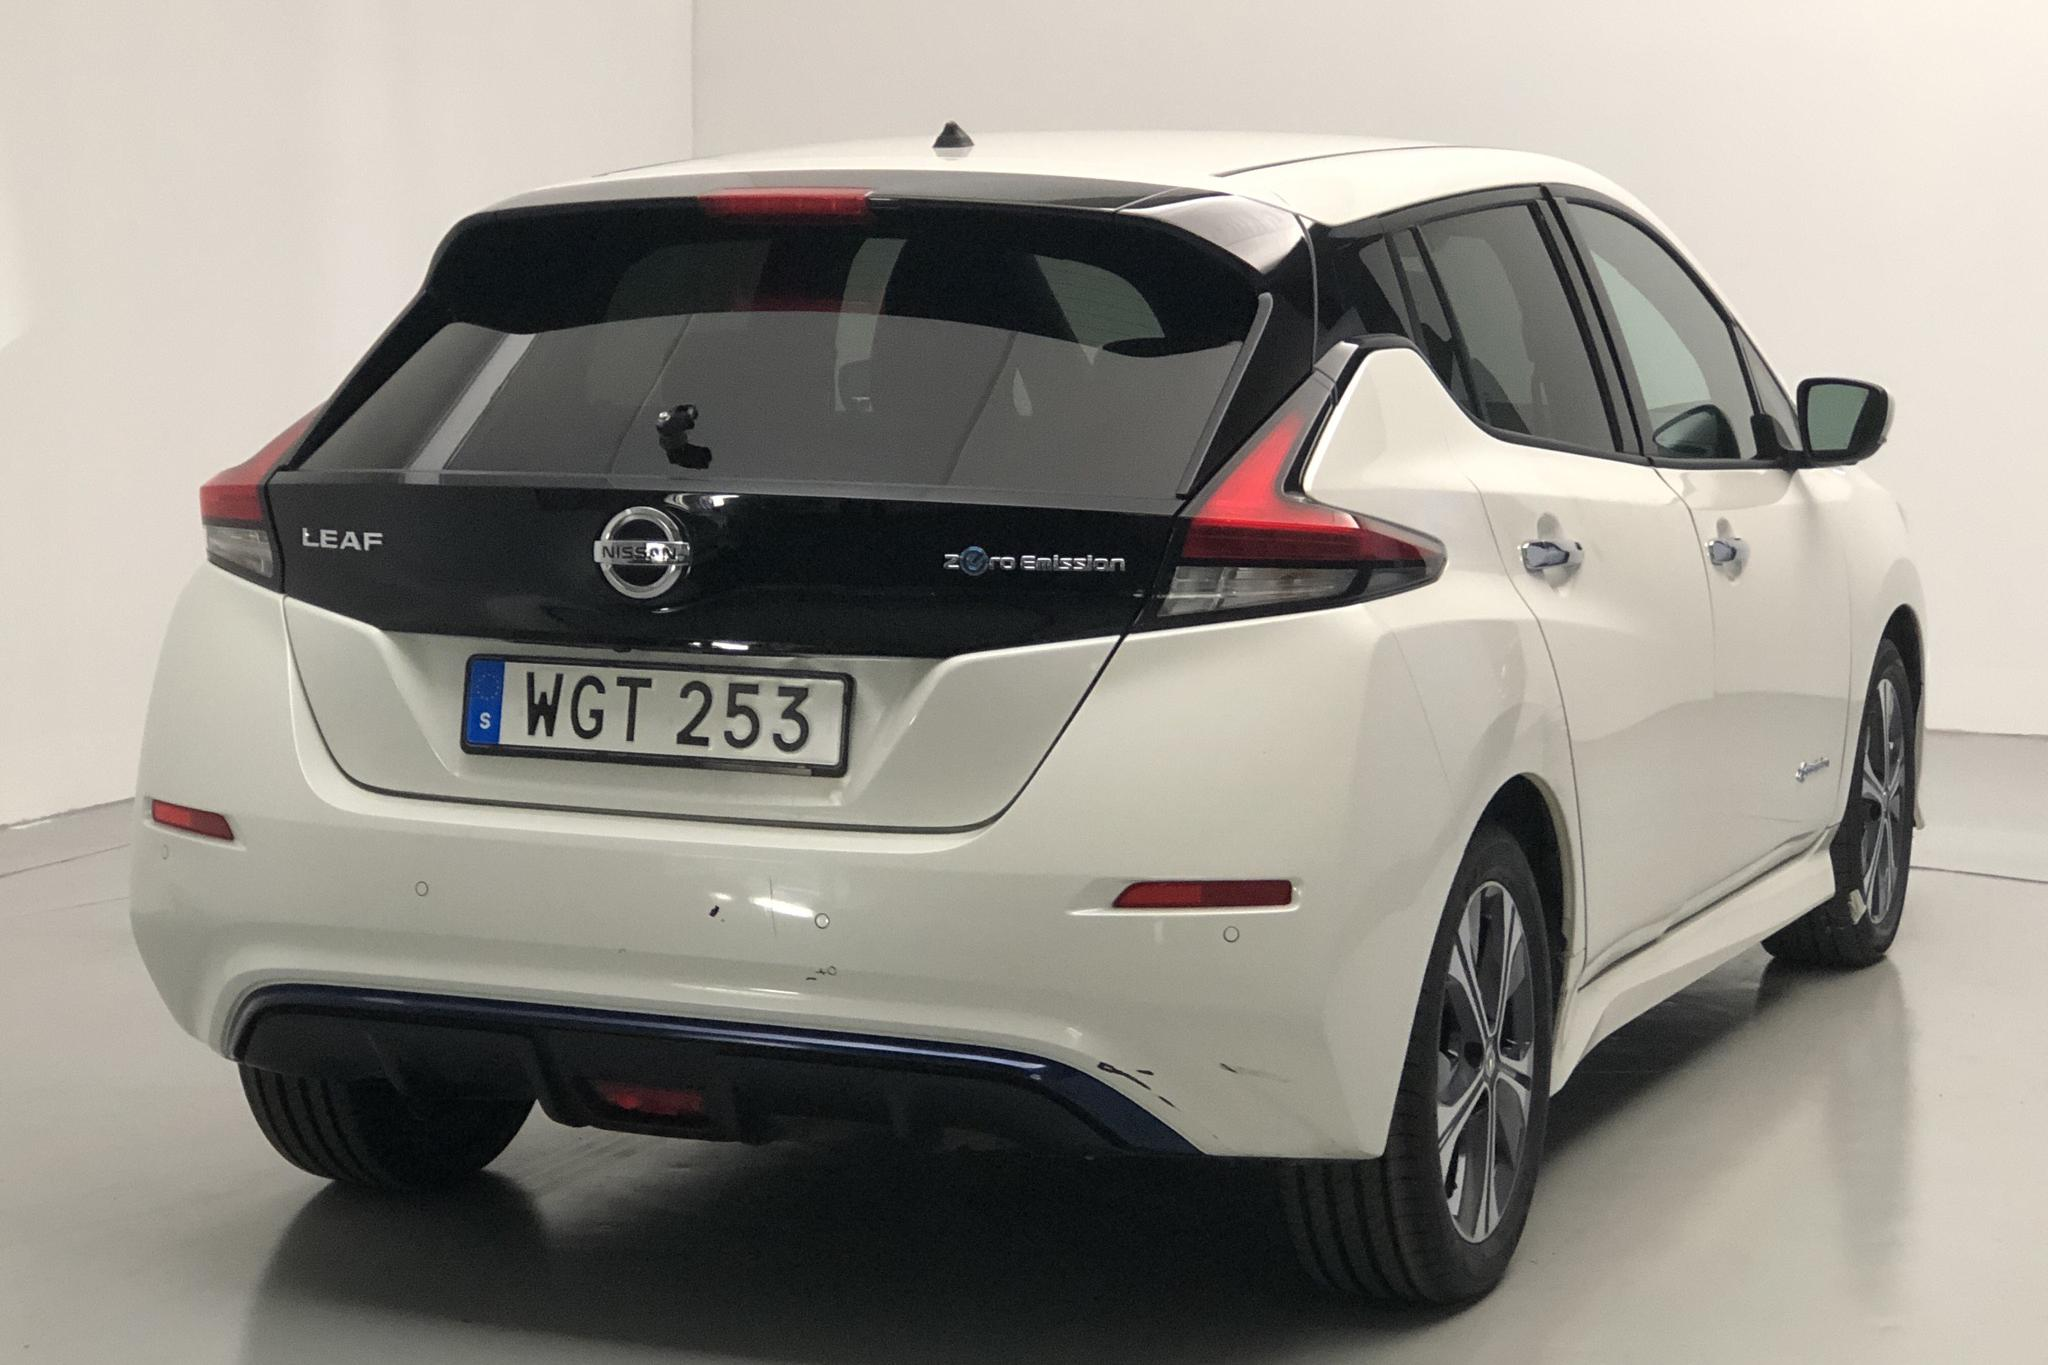 Nissan LEAF 5dr 40 kWh (150hk) - 40 820 km - Automatic - white - 2018